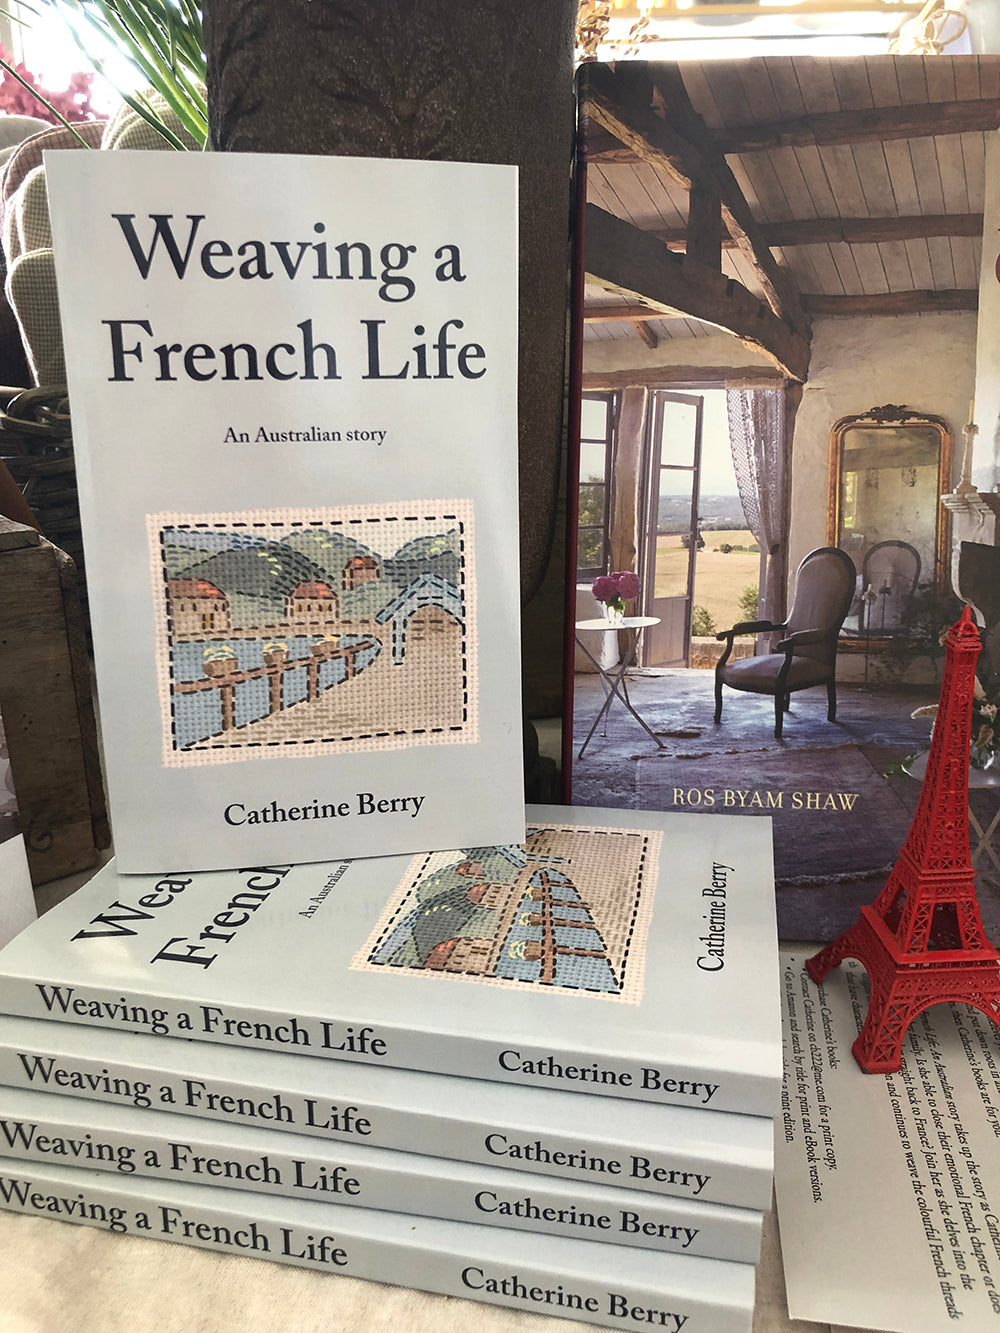 Weaving a French Life book by Catherine Berry